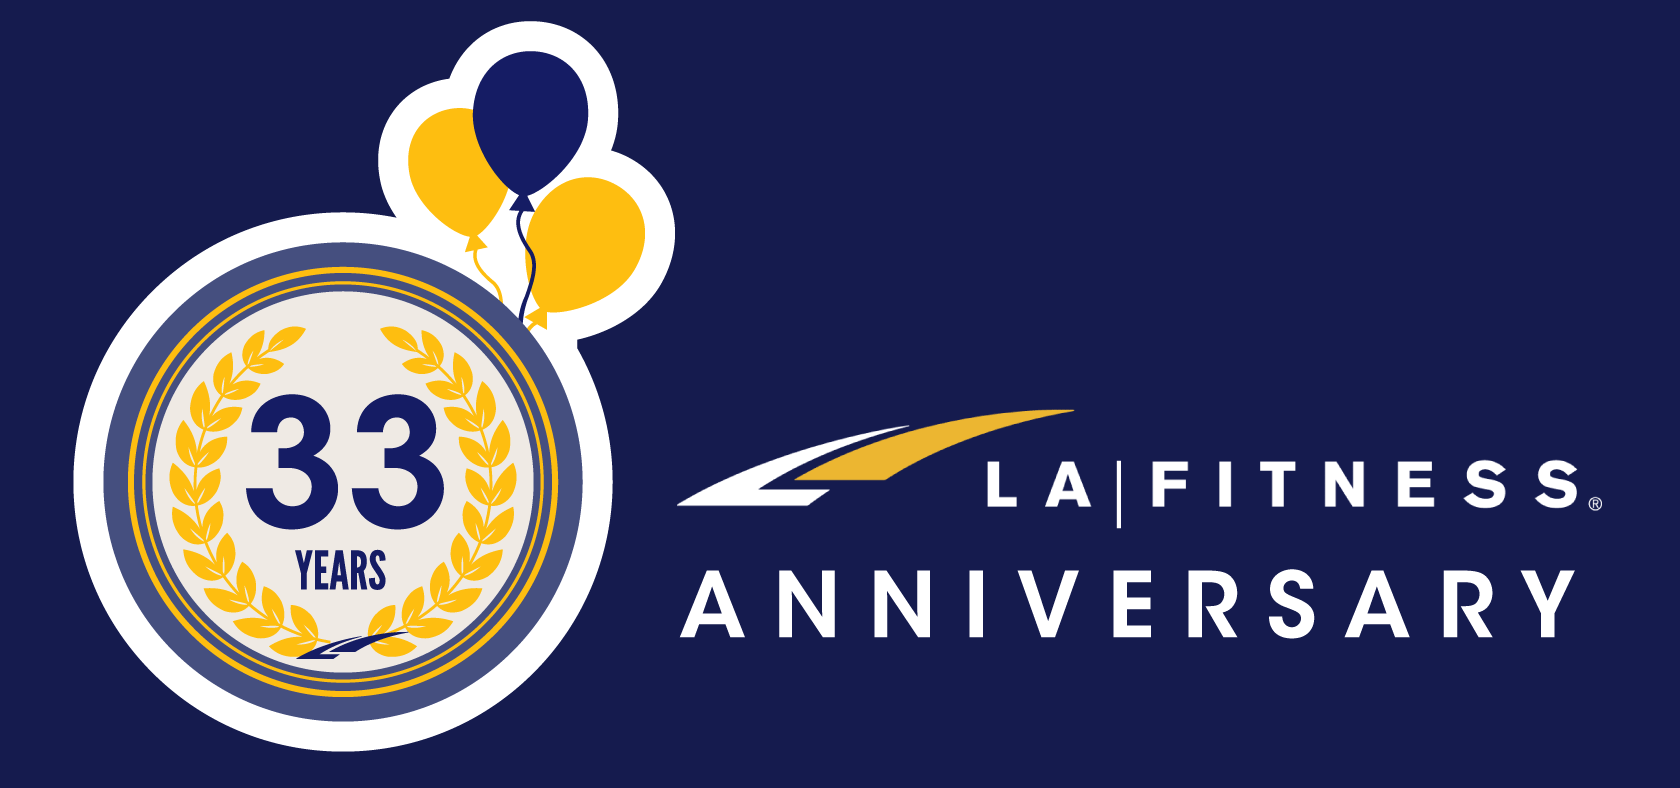 It's LA Fitness' 33rd Anniversary!